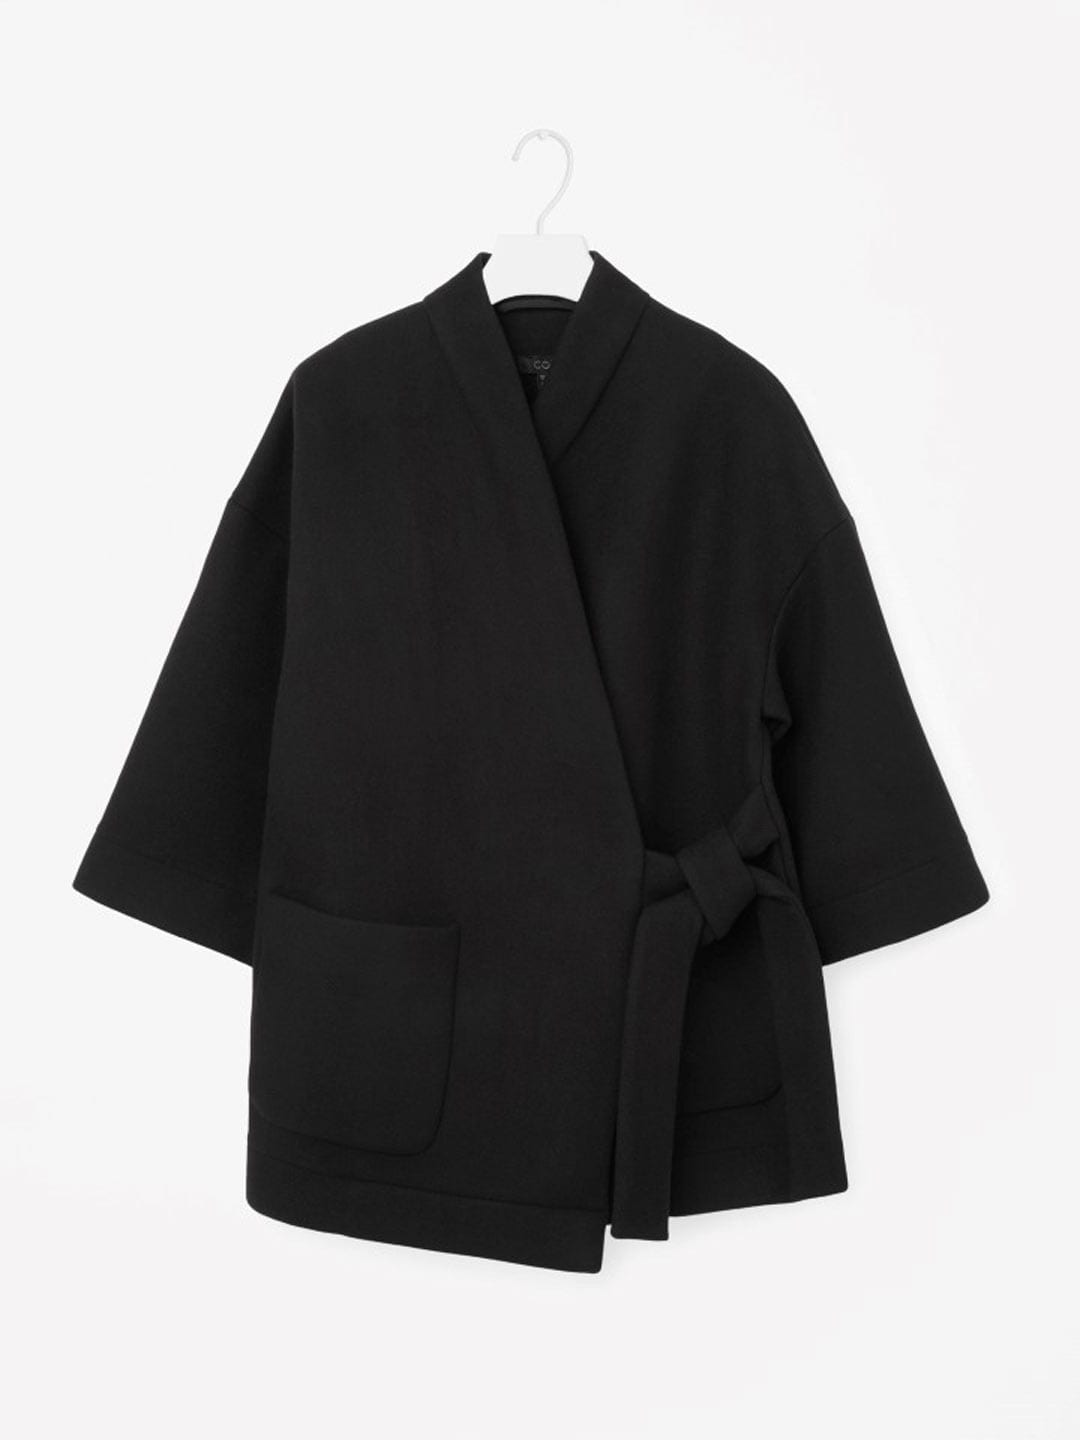 Best Winter Coats | COS Wrap-Over Coat in Black